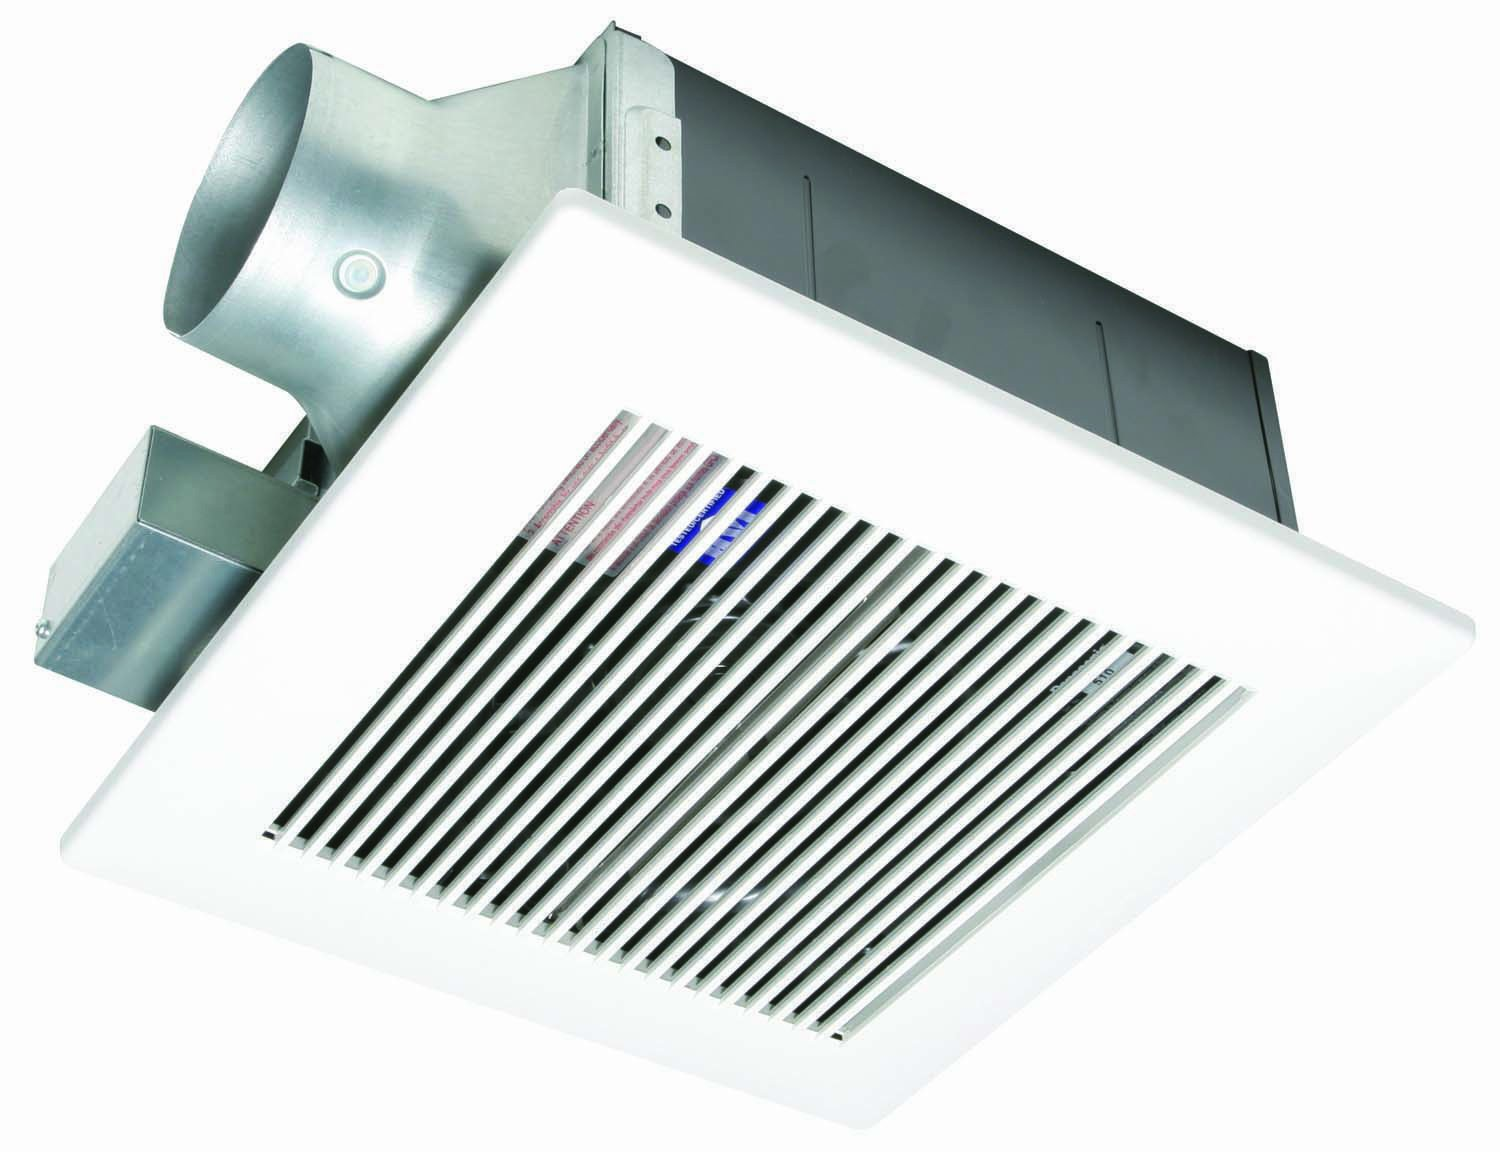 Most powerful bathroom exhaust fan - This Ceiling Mounted Fan Features A Low Profile To Seamlessly Blend In With Your Home S Decor And Is So Quiet You Won T Even Know It S Running